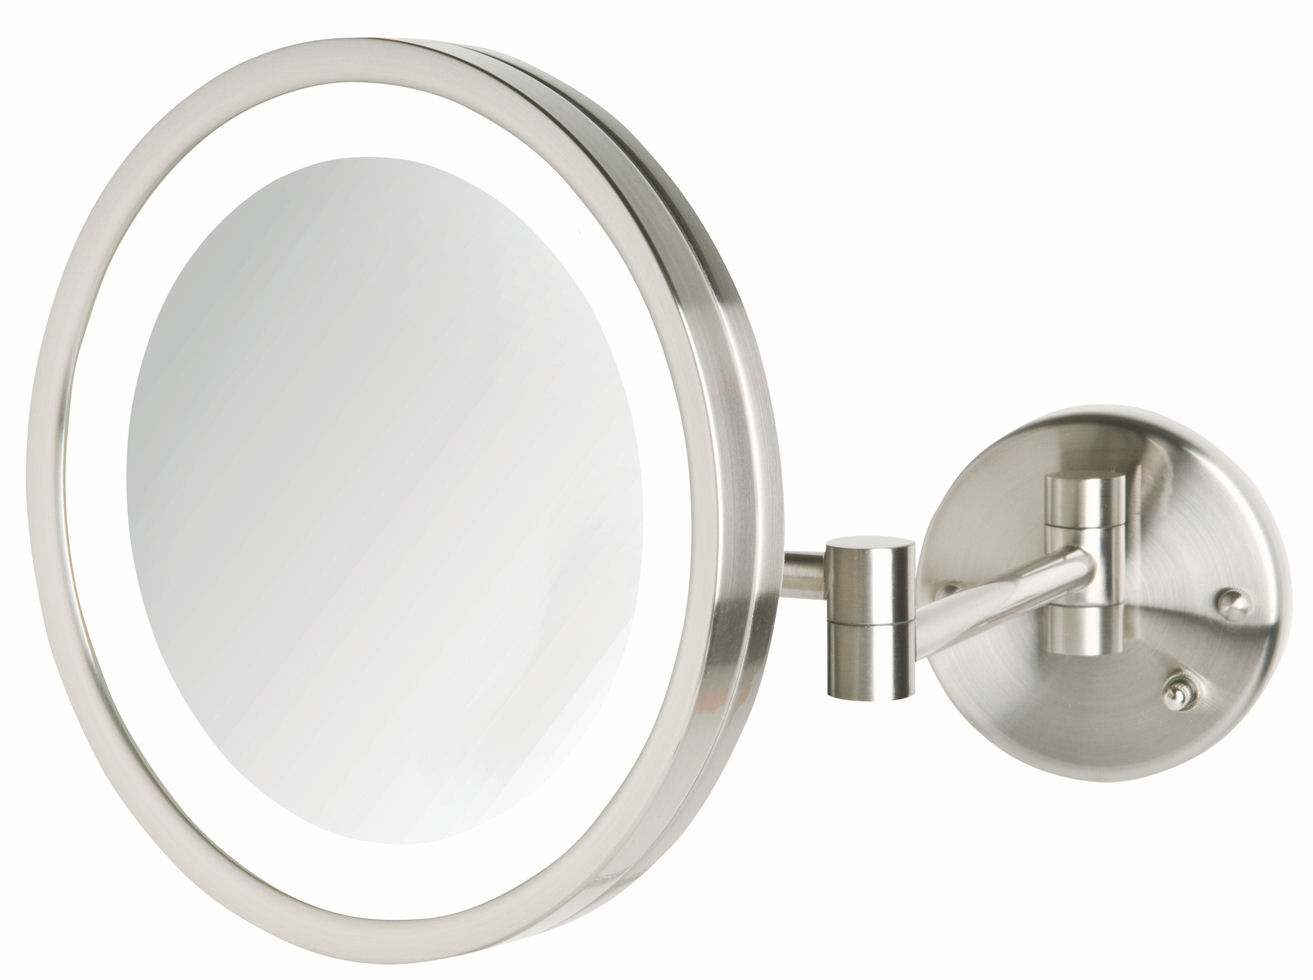 Permalink to Wall Mounted Lighted Makeup Mirrors 10x